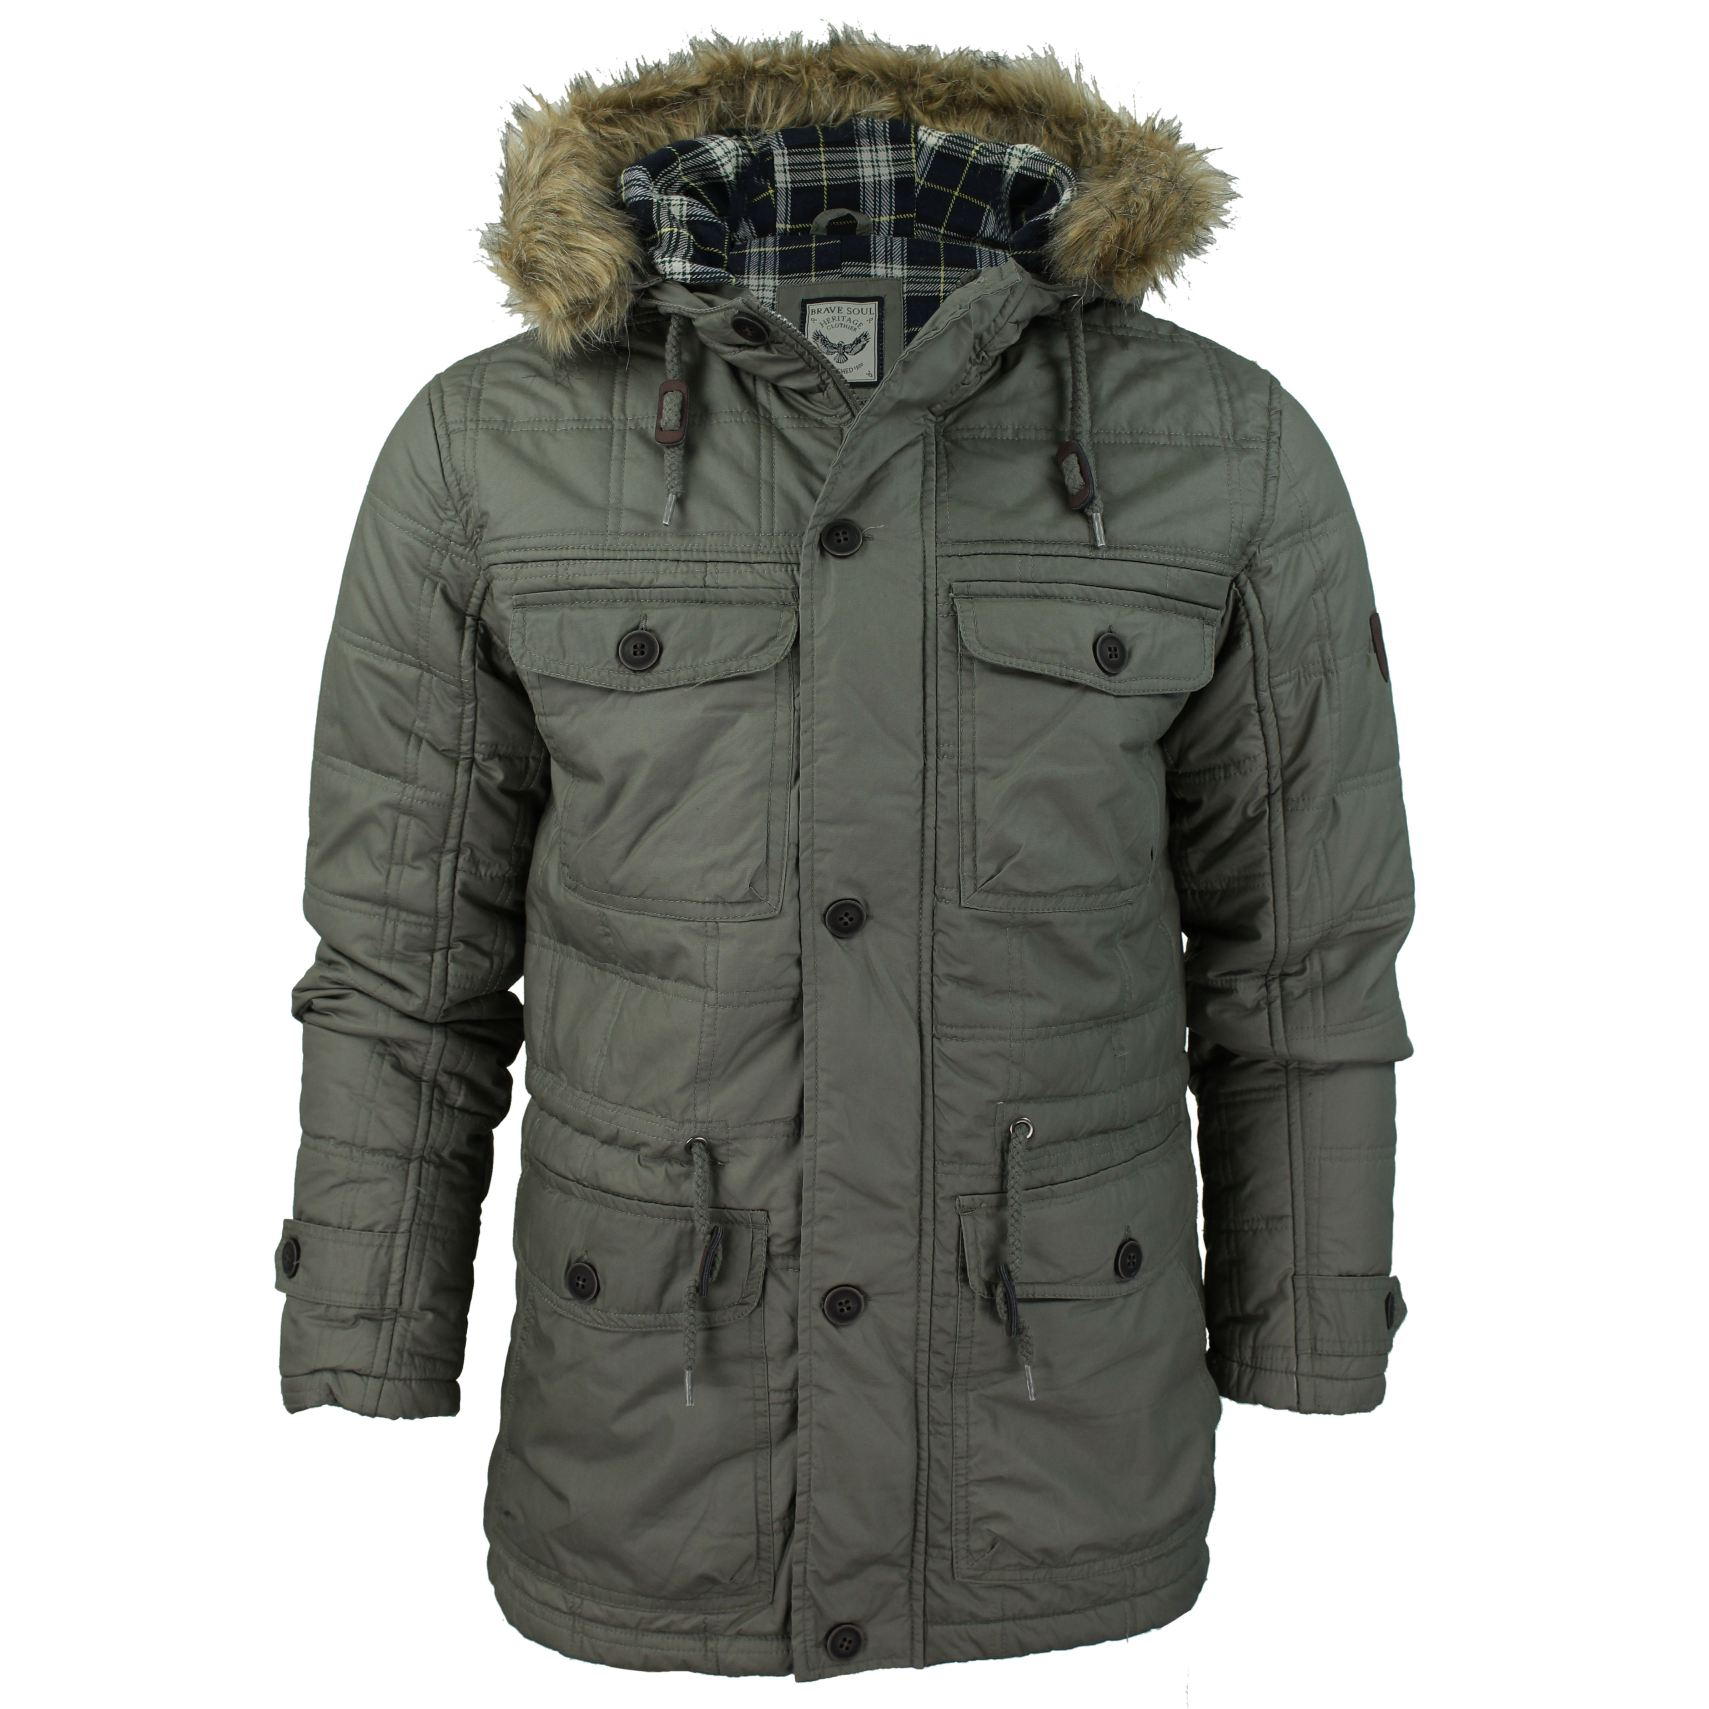 Free shipping and returns on Men's Quilted & Puffer Coats & Jackets at free-desktop-stripper.ml